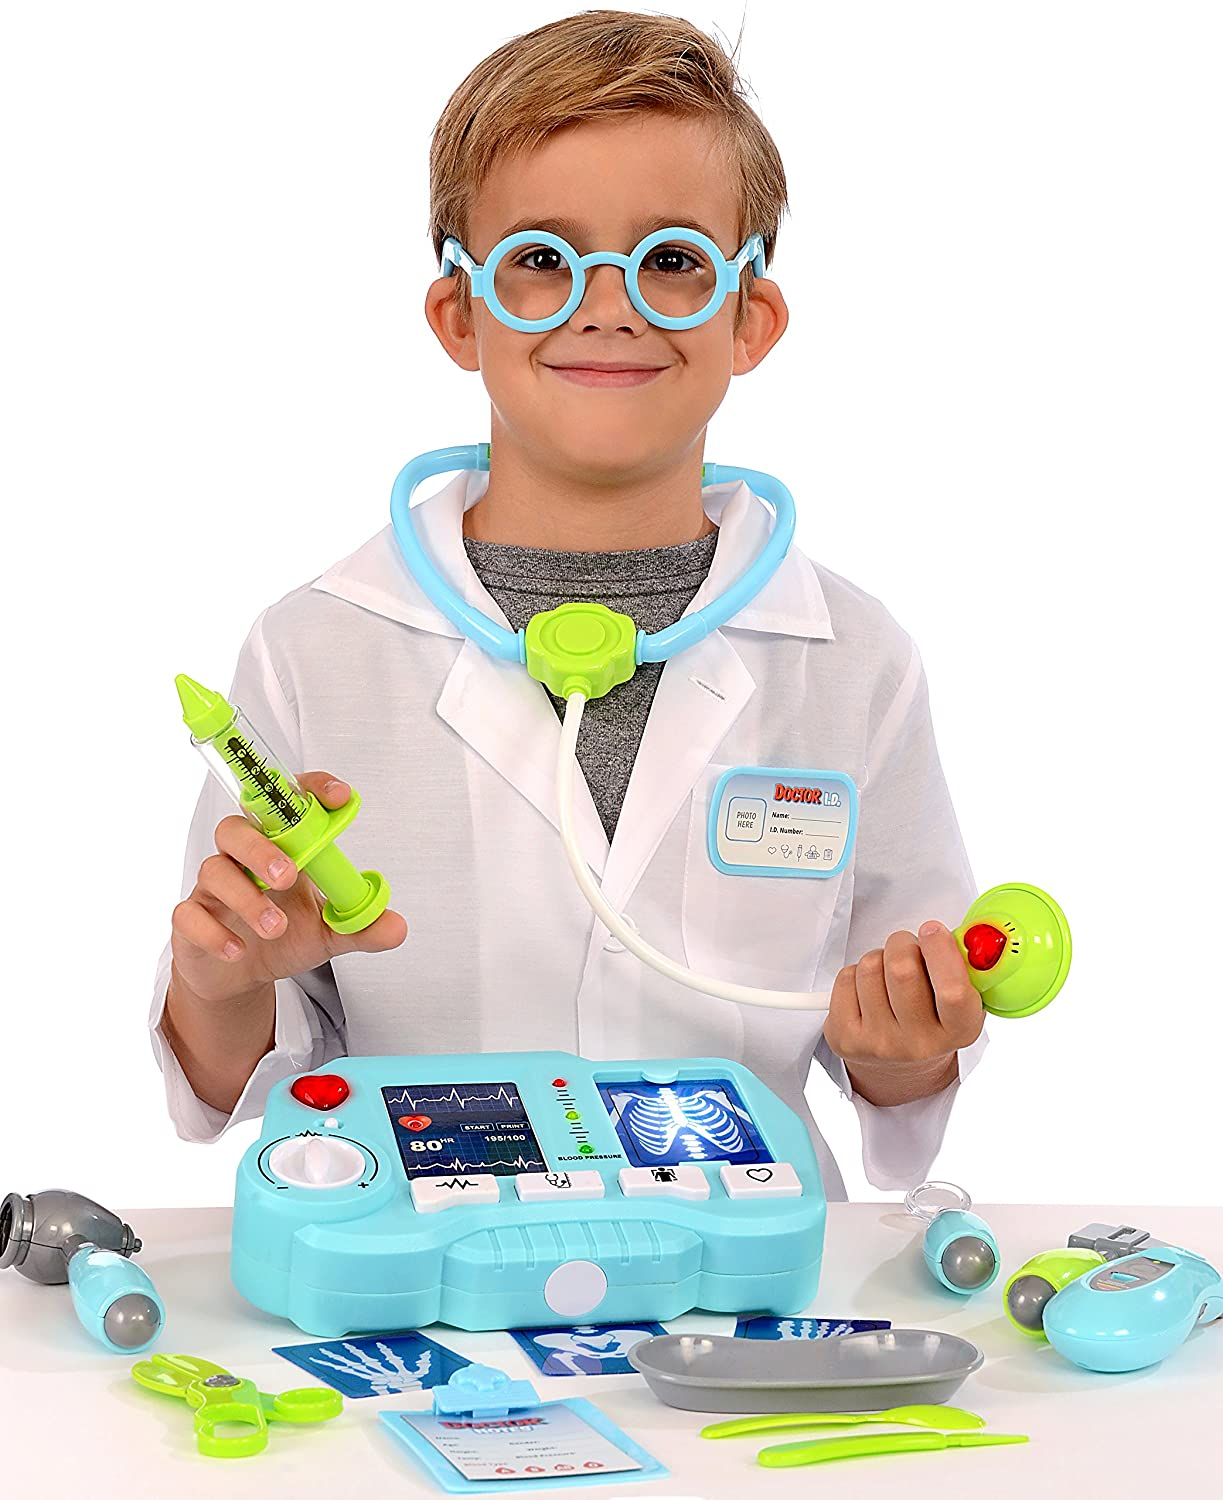 Top 9 Best Toy Doctor Kits Reviews in 2020 6